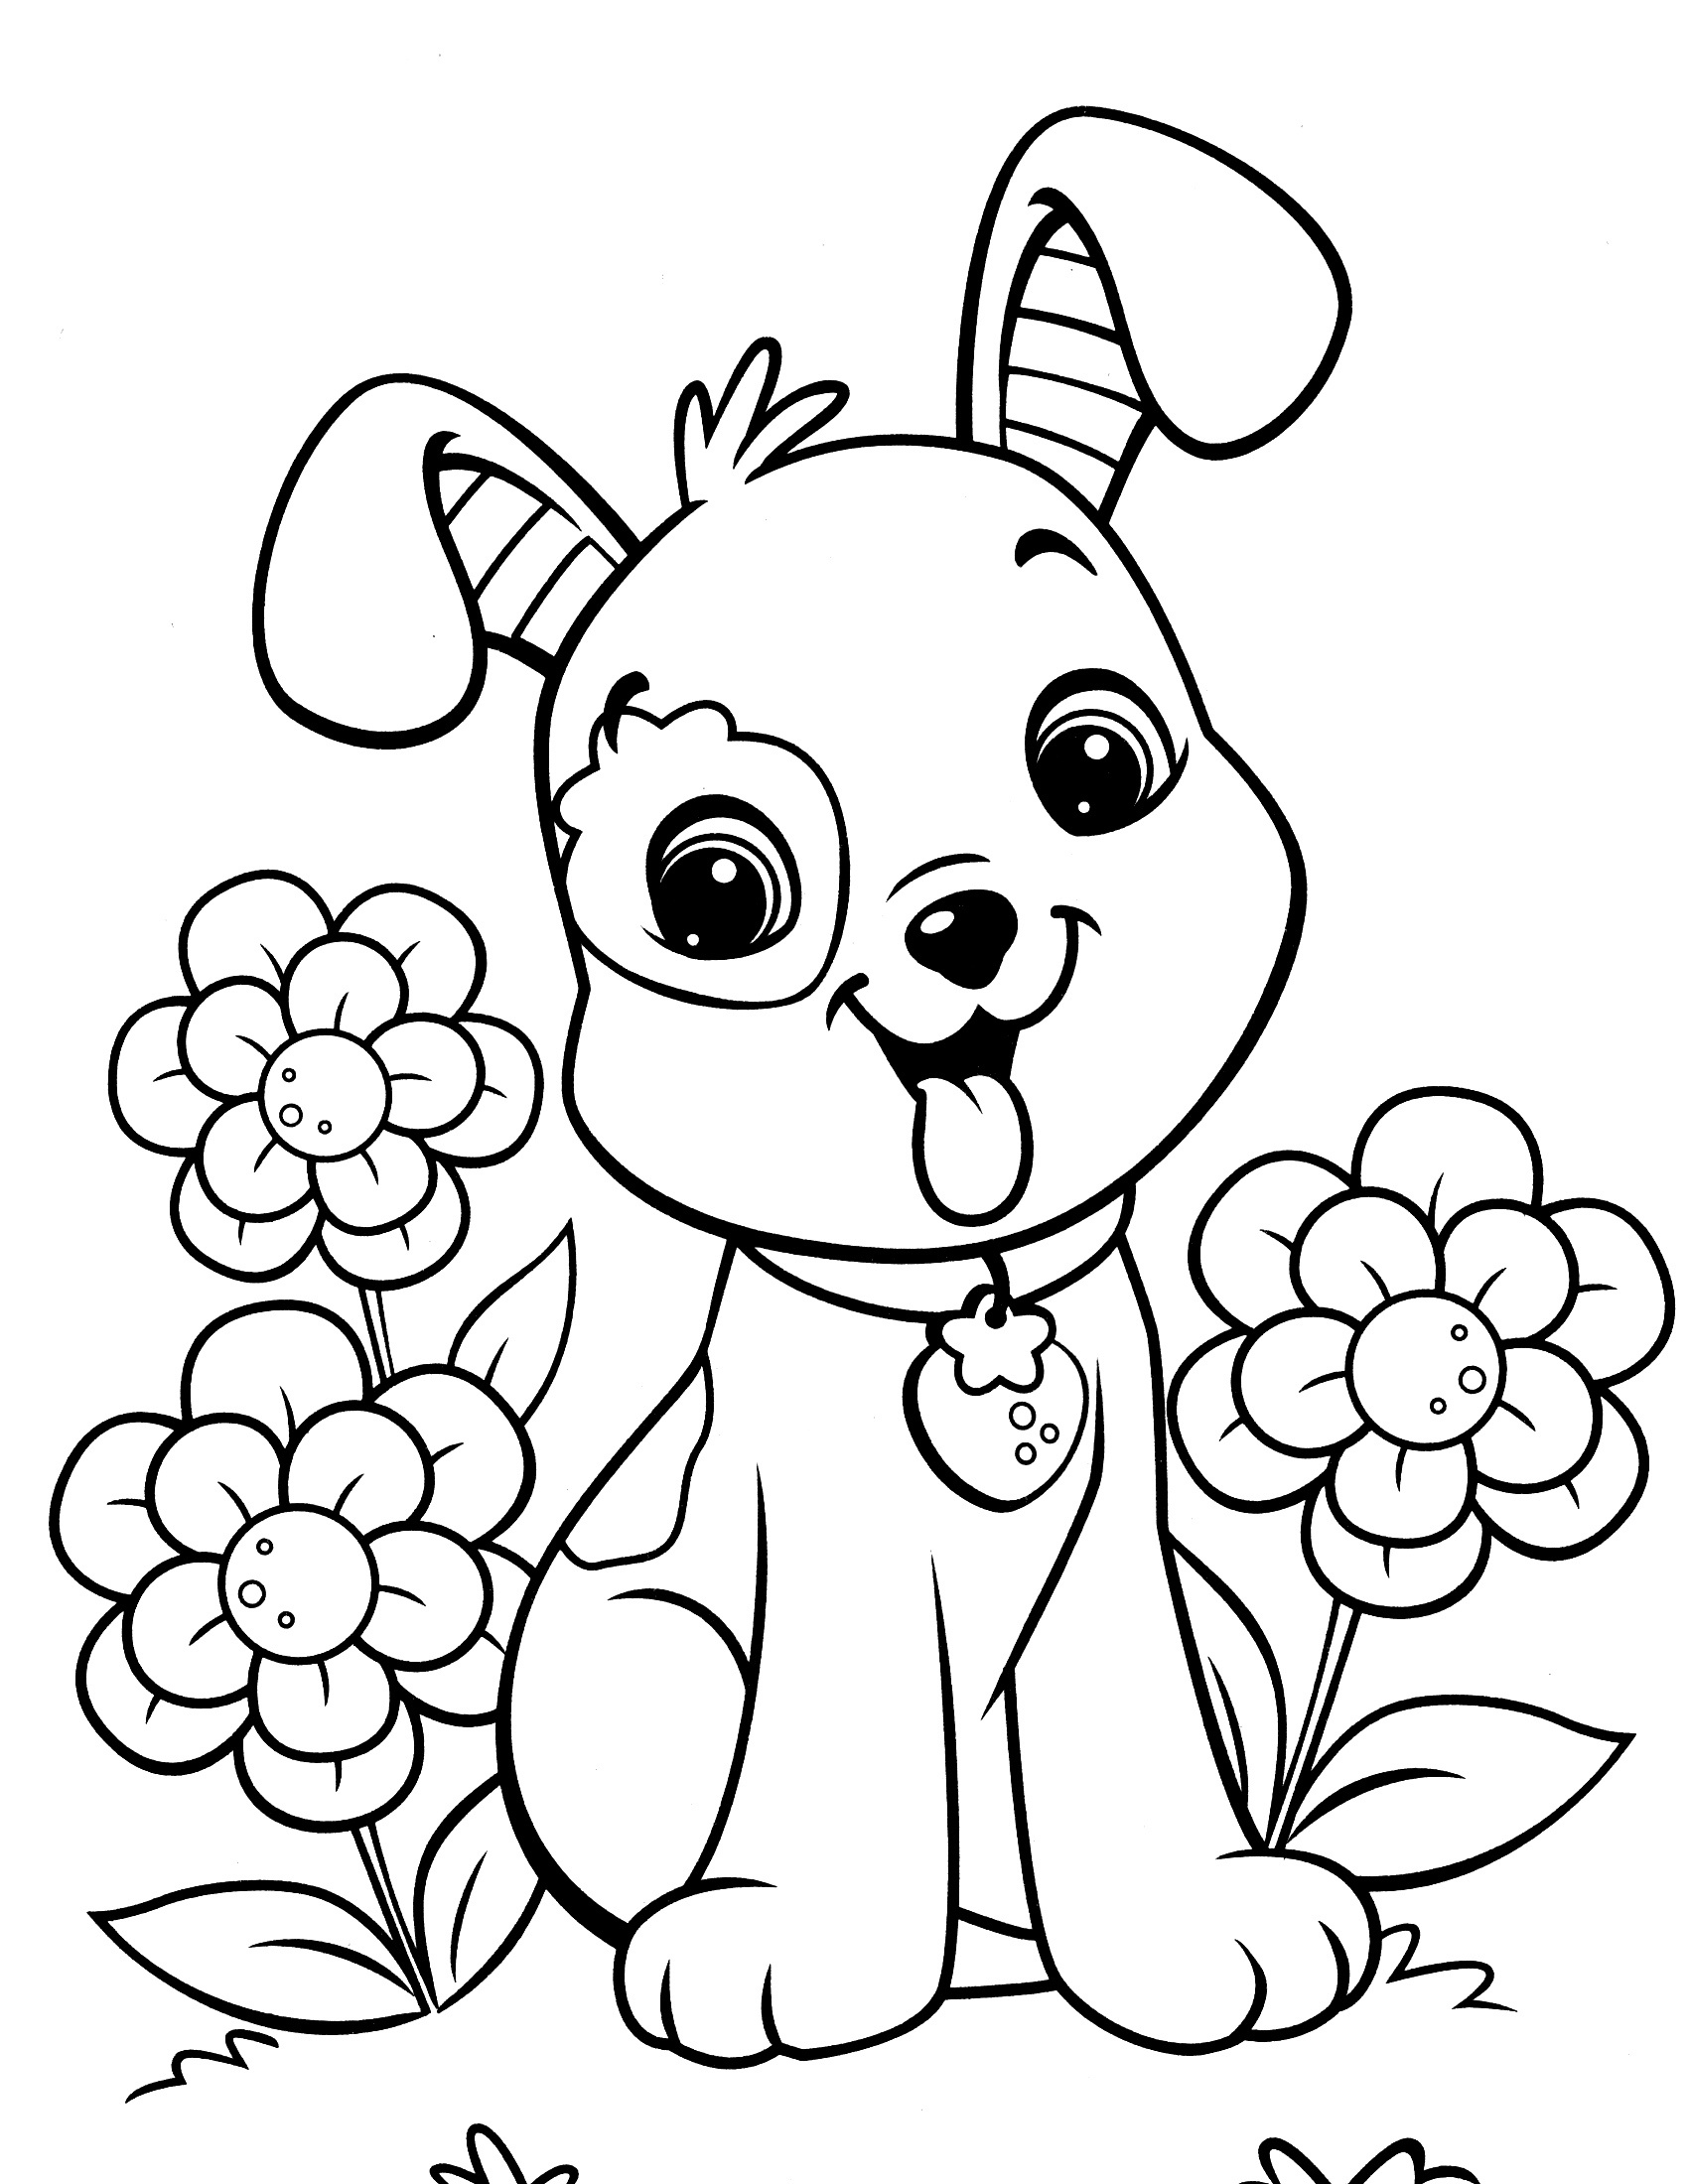 Dog Coloring Pages Easy - Free Printable Dog Coloring Pages